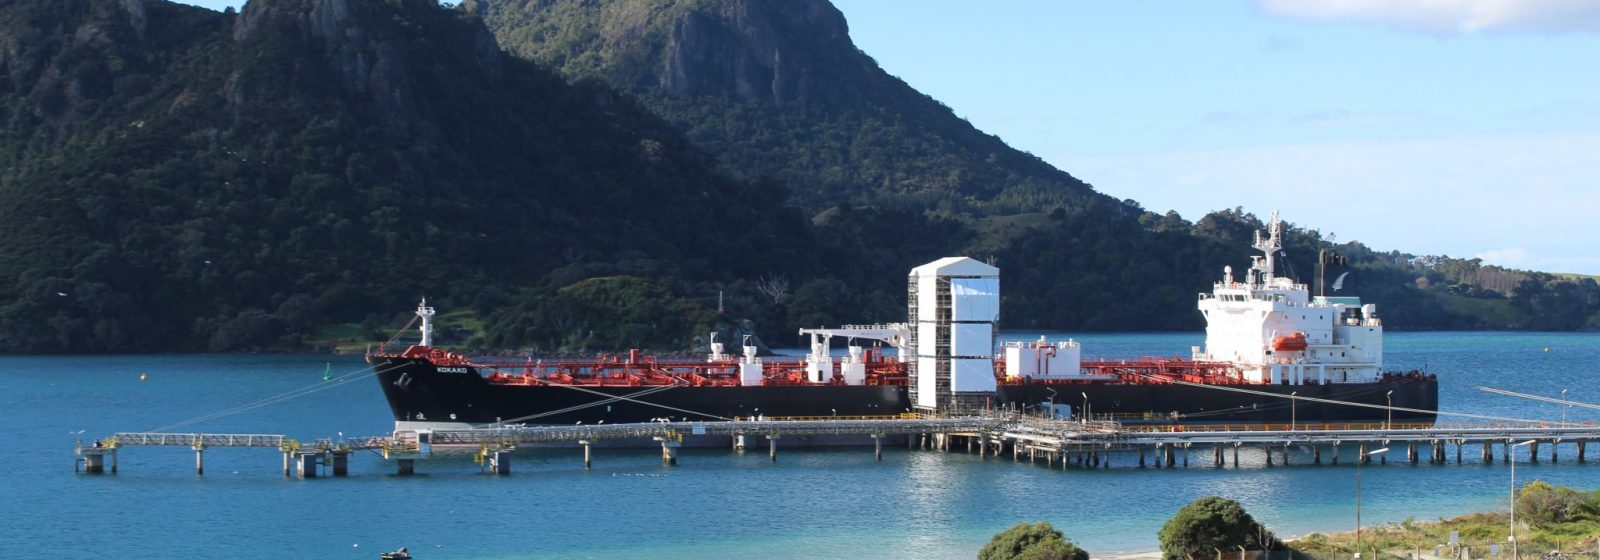 Jetty Loading Structure Maintenance - Header Image